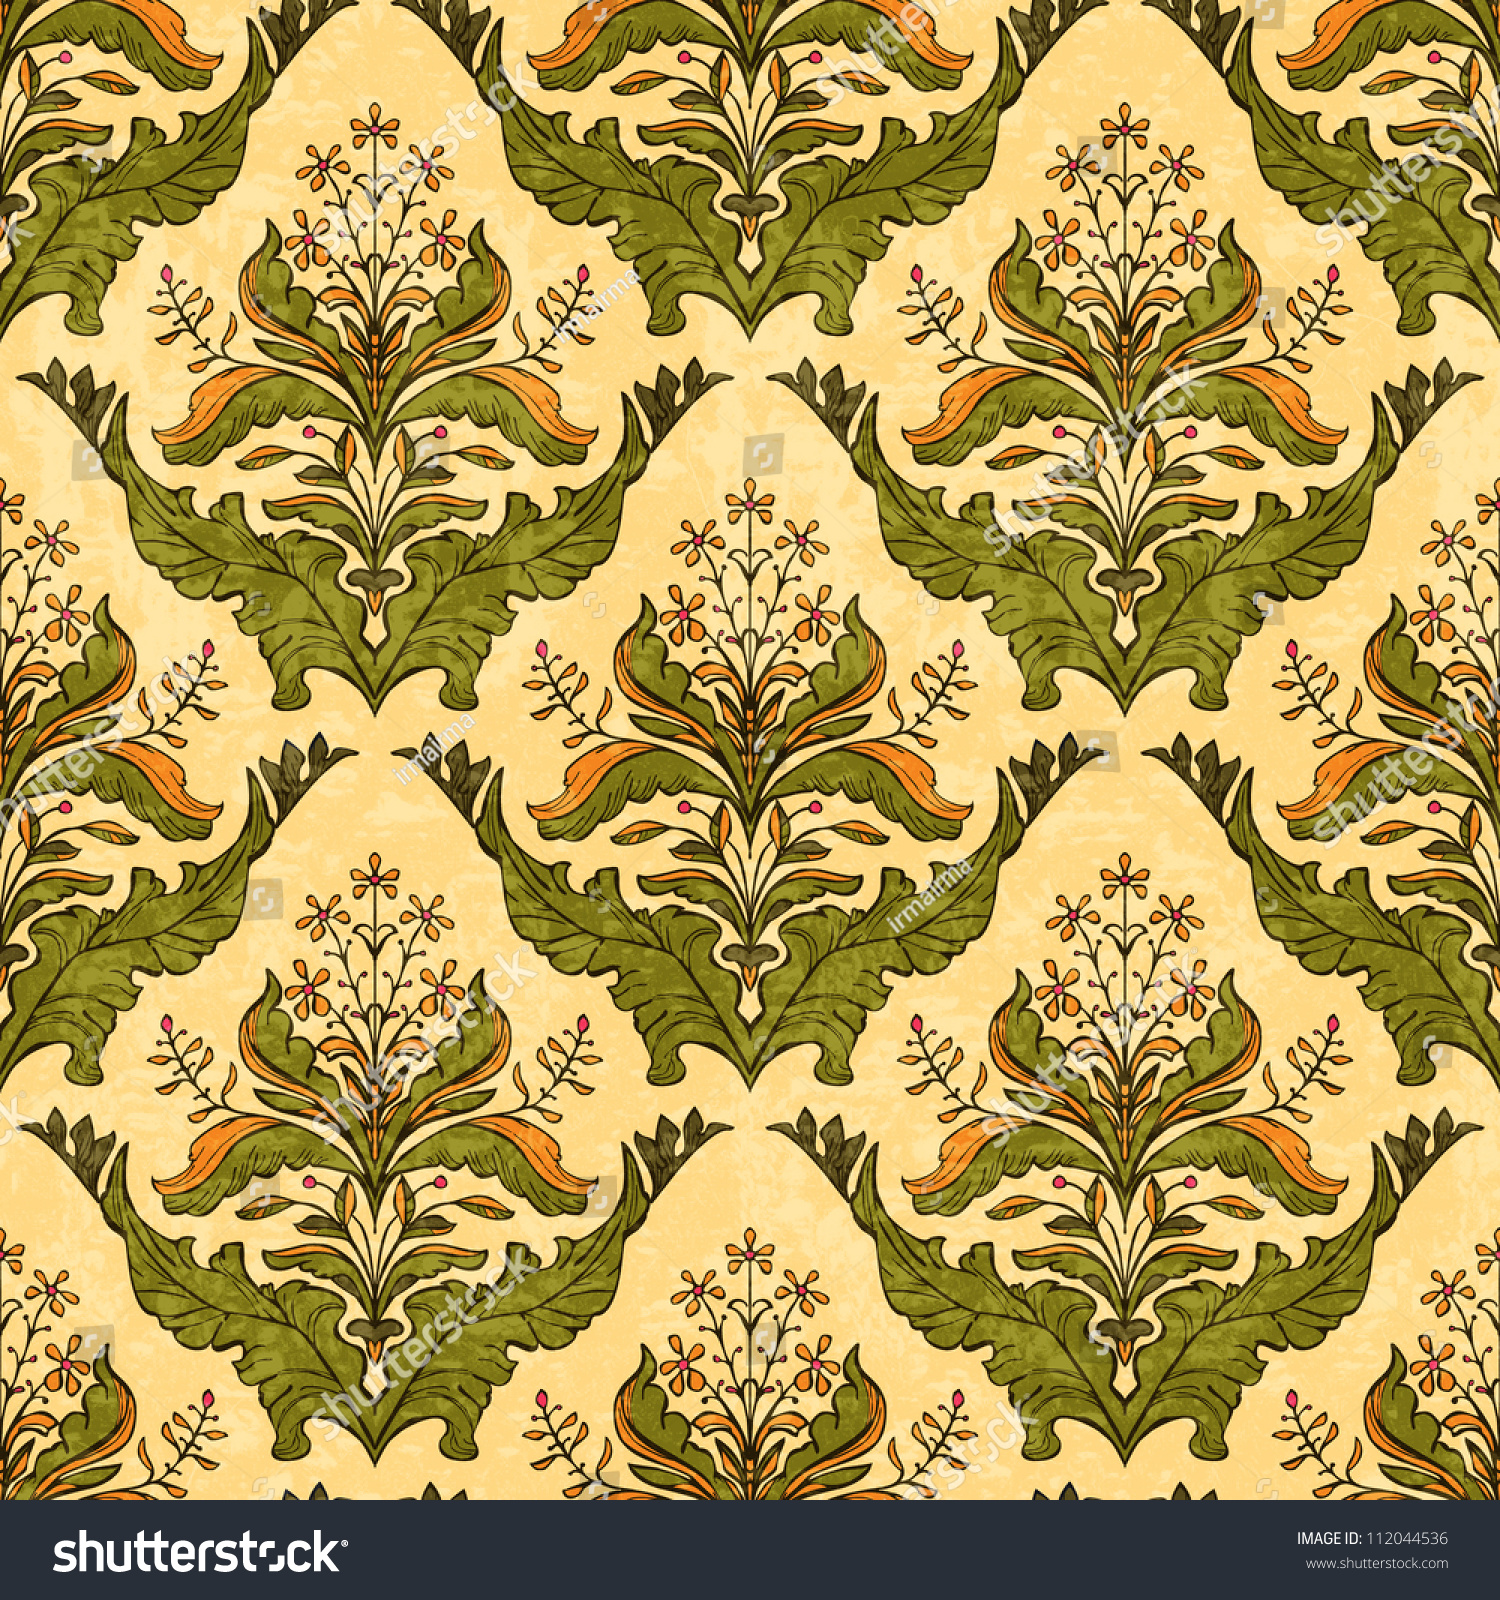 Classic Floral Wallpaper Stylized Plants Seamless Stock